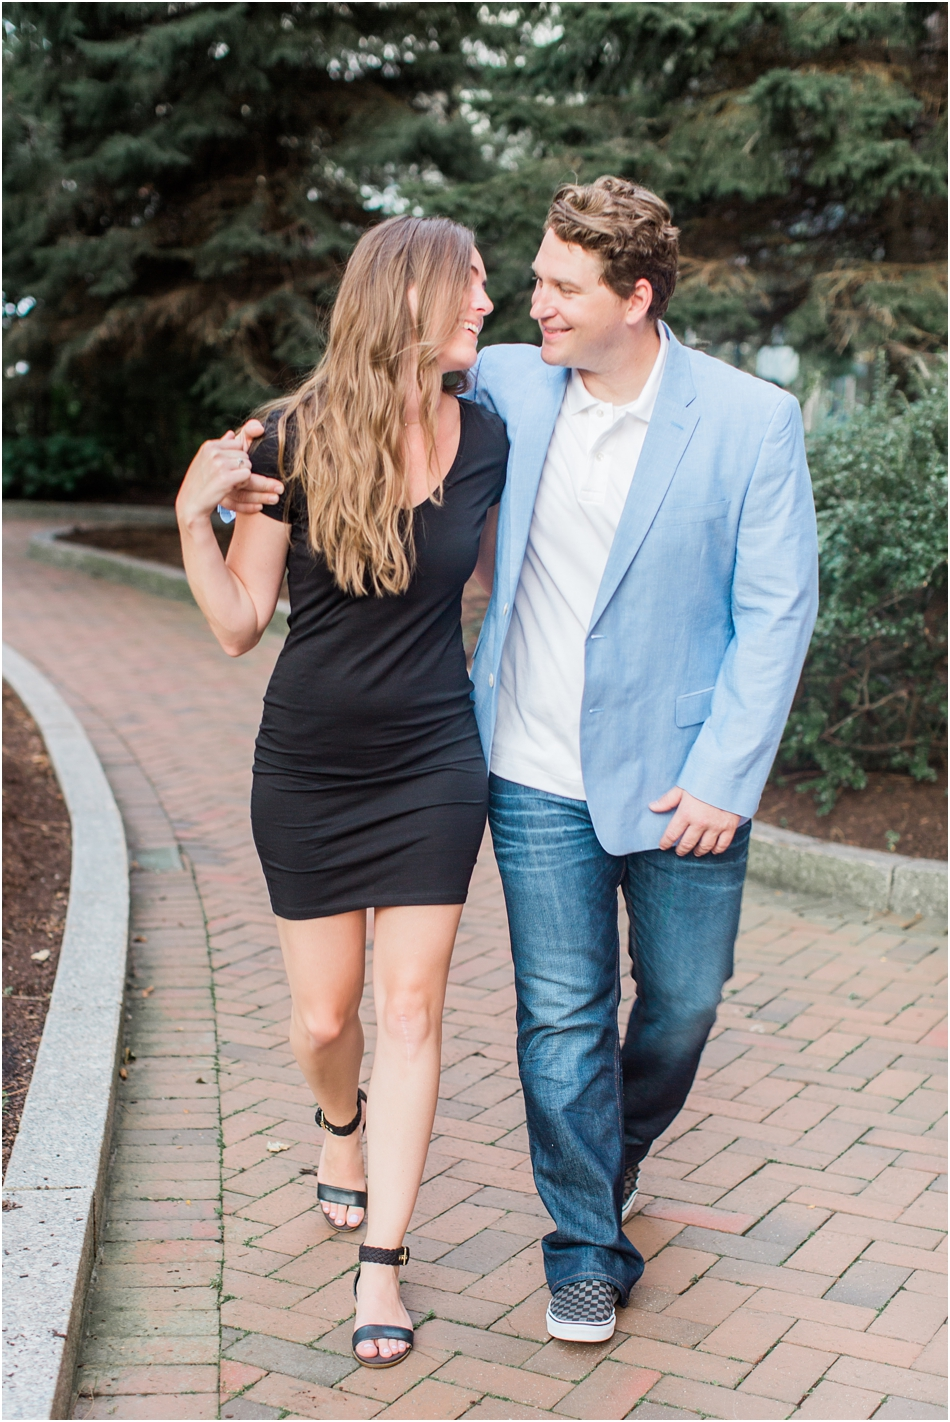 seaport_bailey_andrew_engagement_boston_massachusetts_cape_cod_new_england_wedding_photographer_Meredith_Jane_Photography_photo_1966.jpg